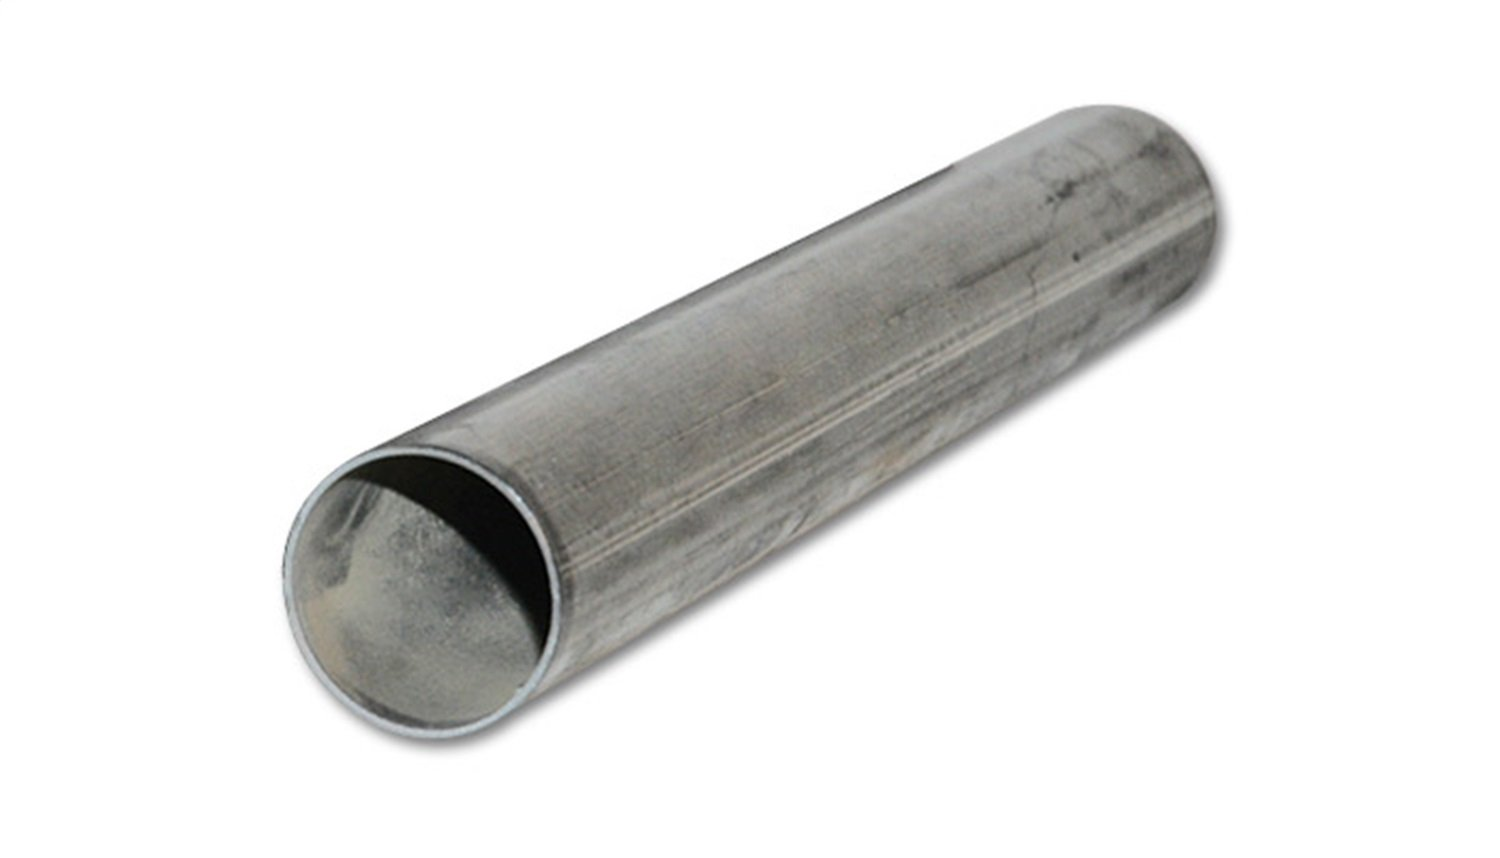 Vibrant (2645) 5' T304 Stainless Steel Straight Tubing by Vibrant Performance